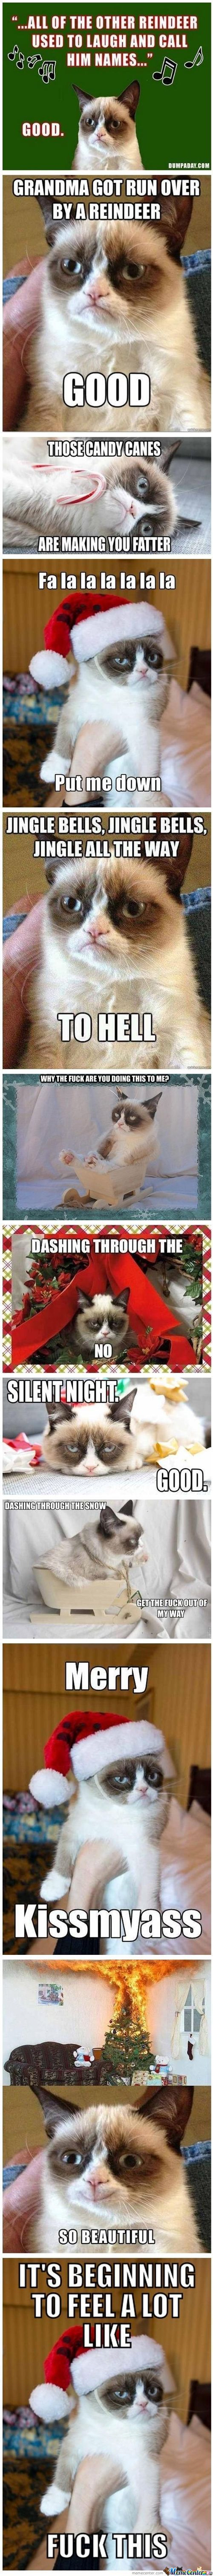 Grumpy Cat Christmas Compilation